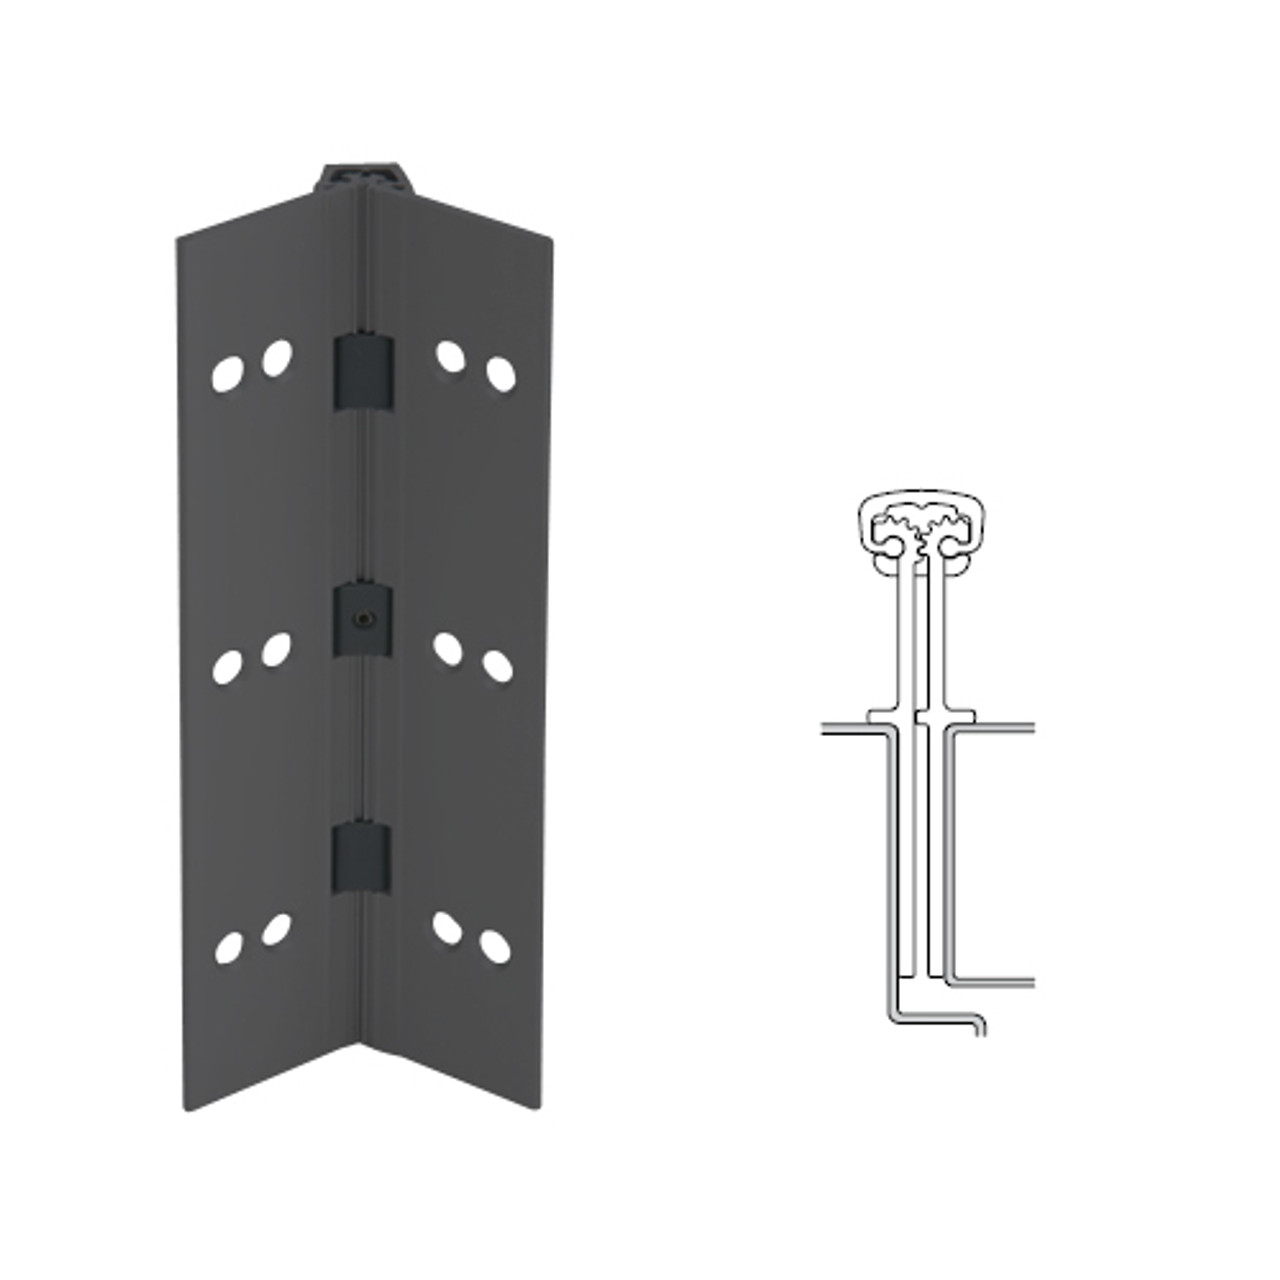 040XY-315AN-83-TEKWD IVES Full Mortise Continuous Geared Hinges with Wood Screws in Anodized Black